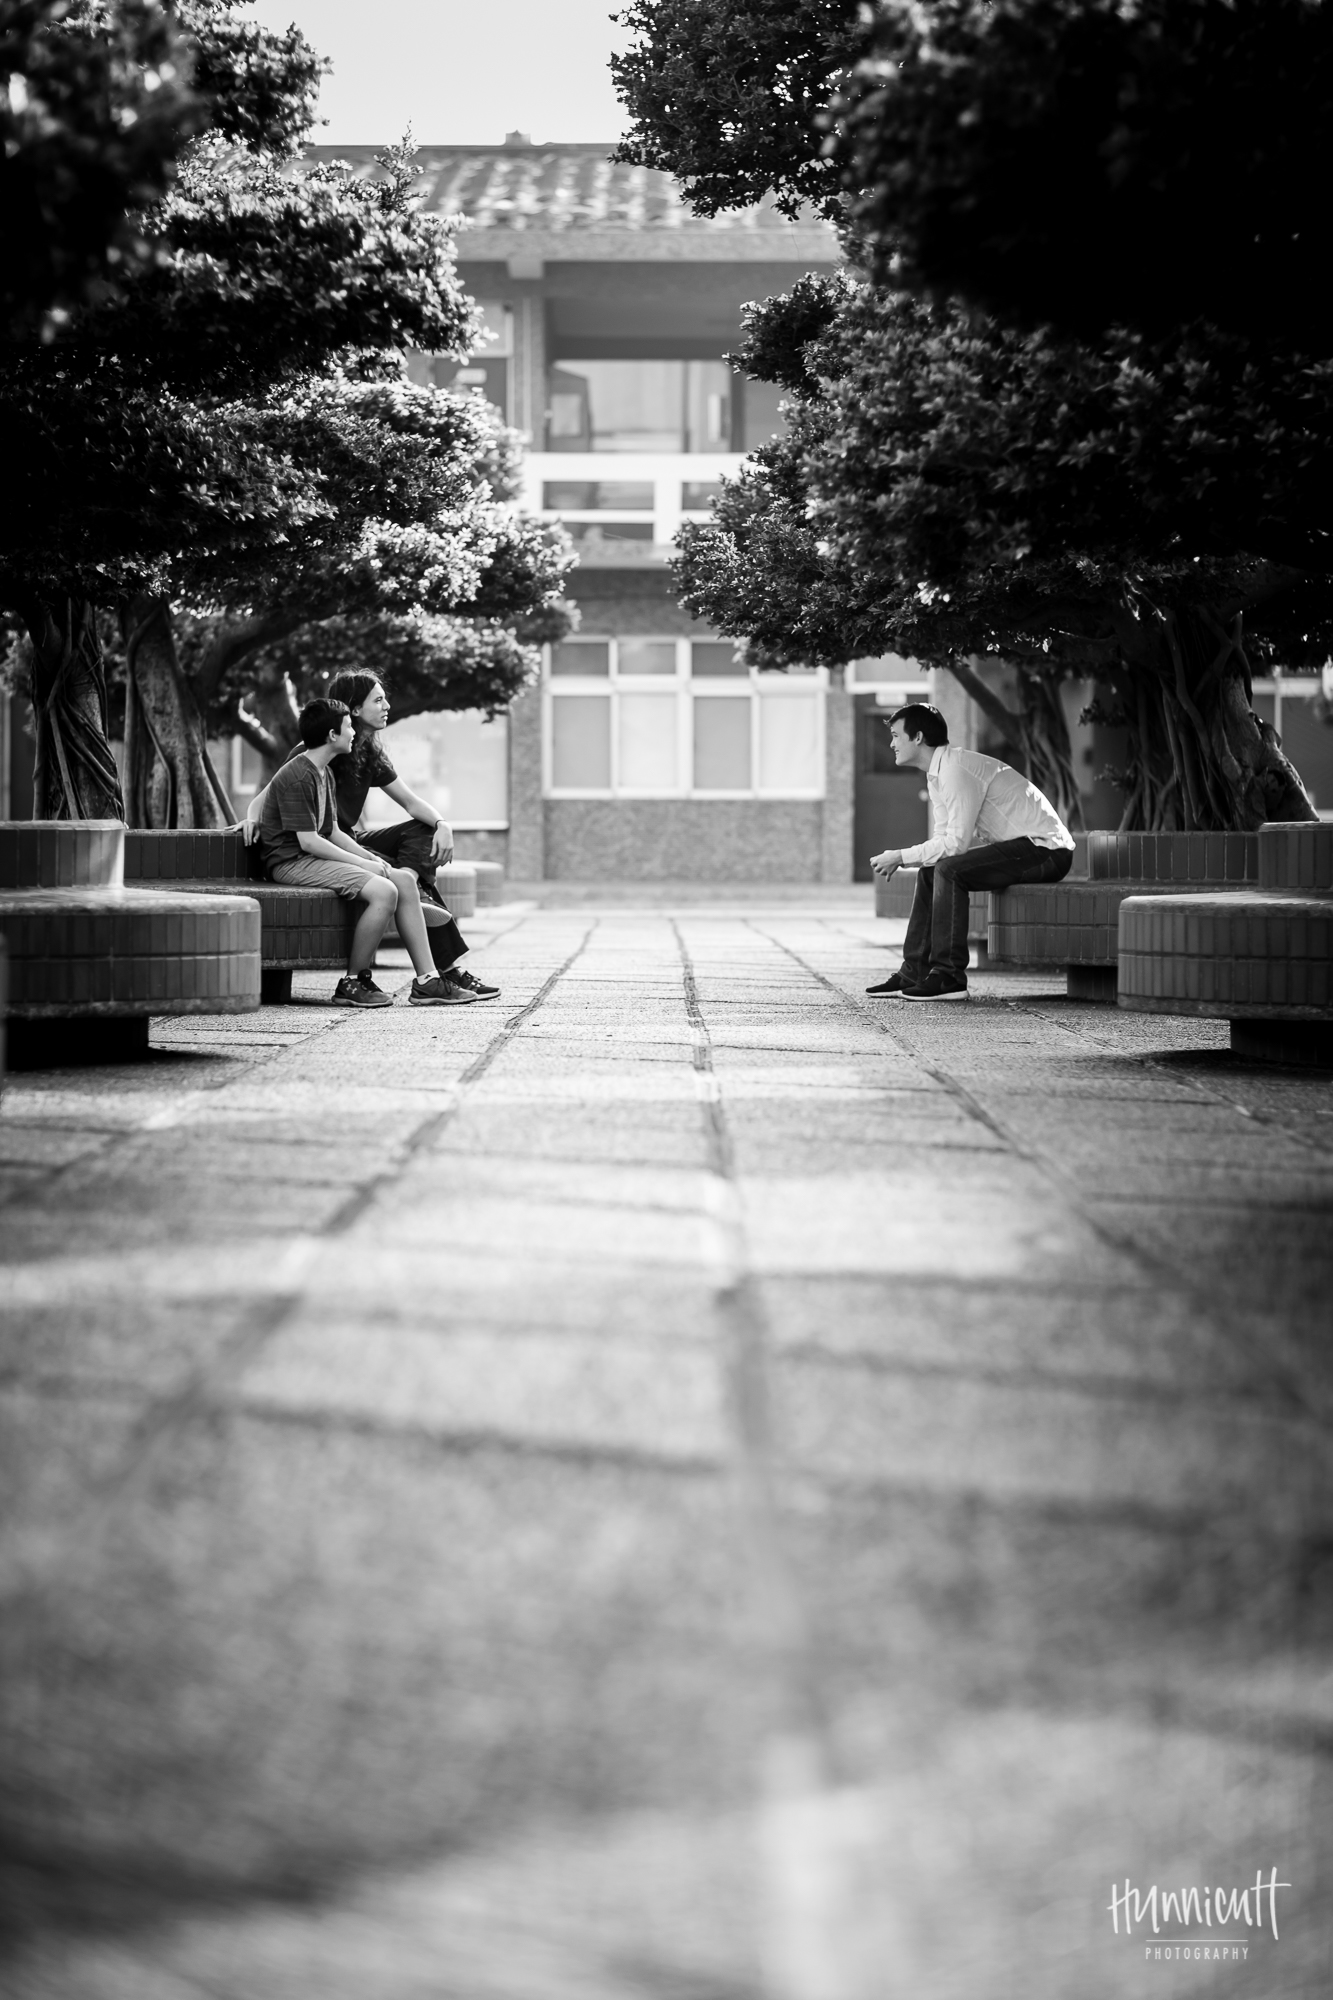 Brothers-Outdoor-Lifestyle_Taichung-School-2